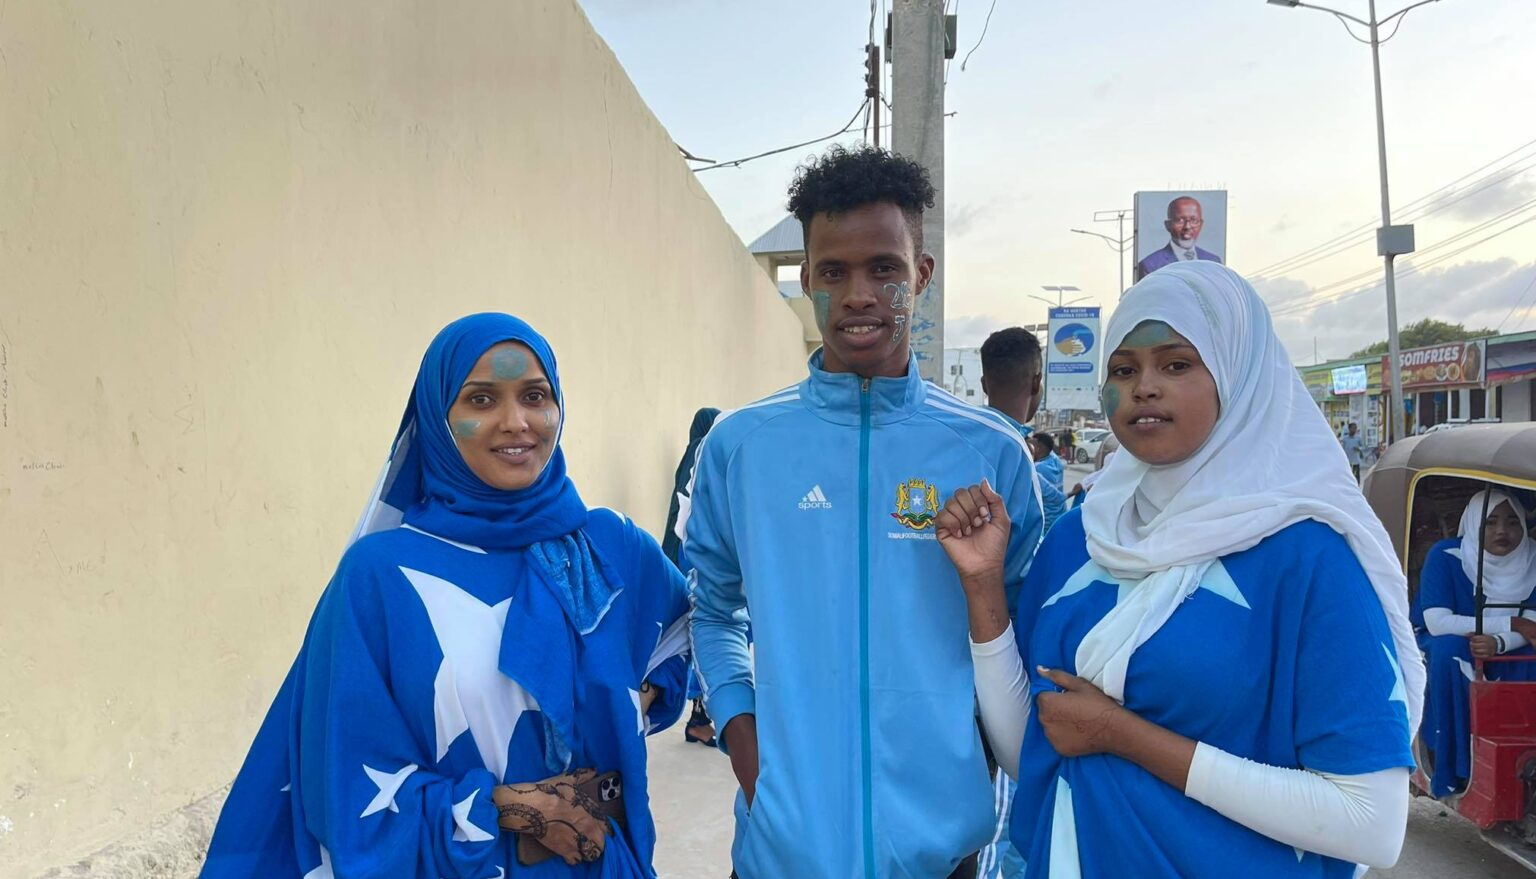 Somalia's youth: A generation spent dreaming of unity